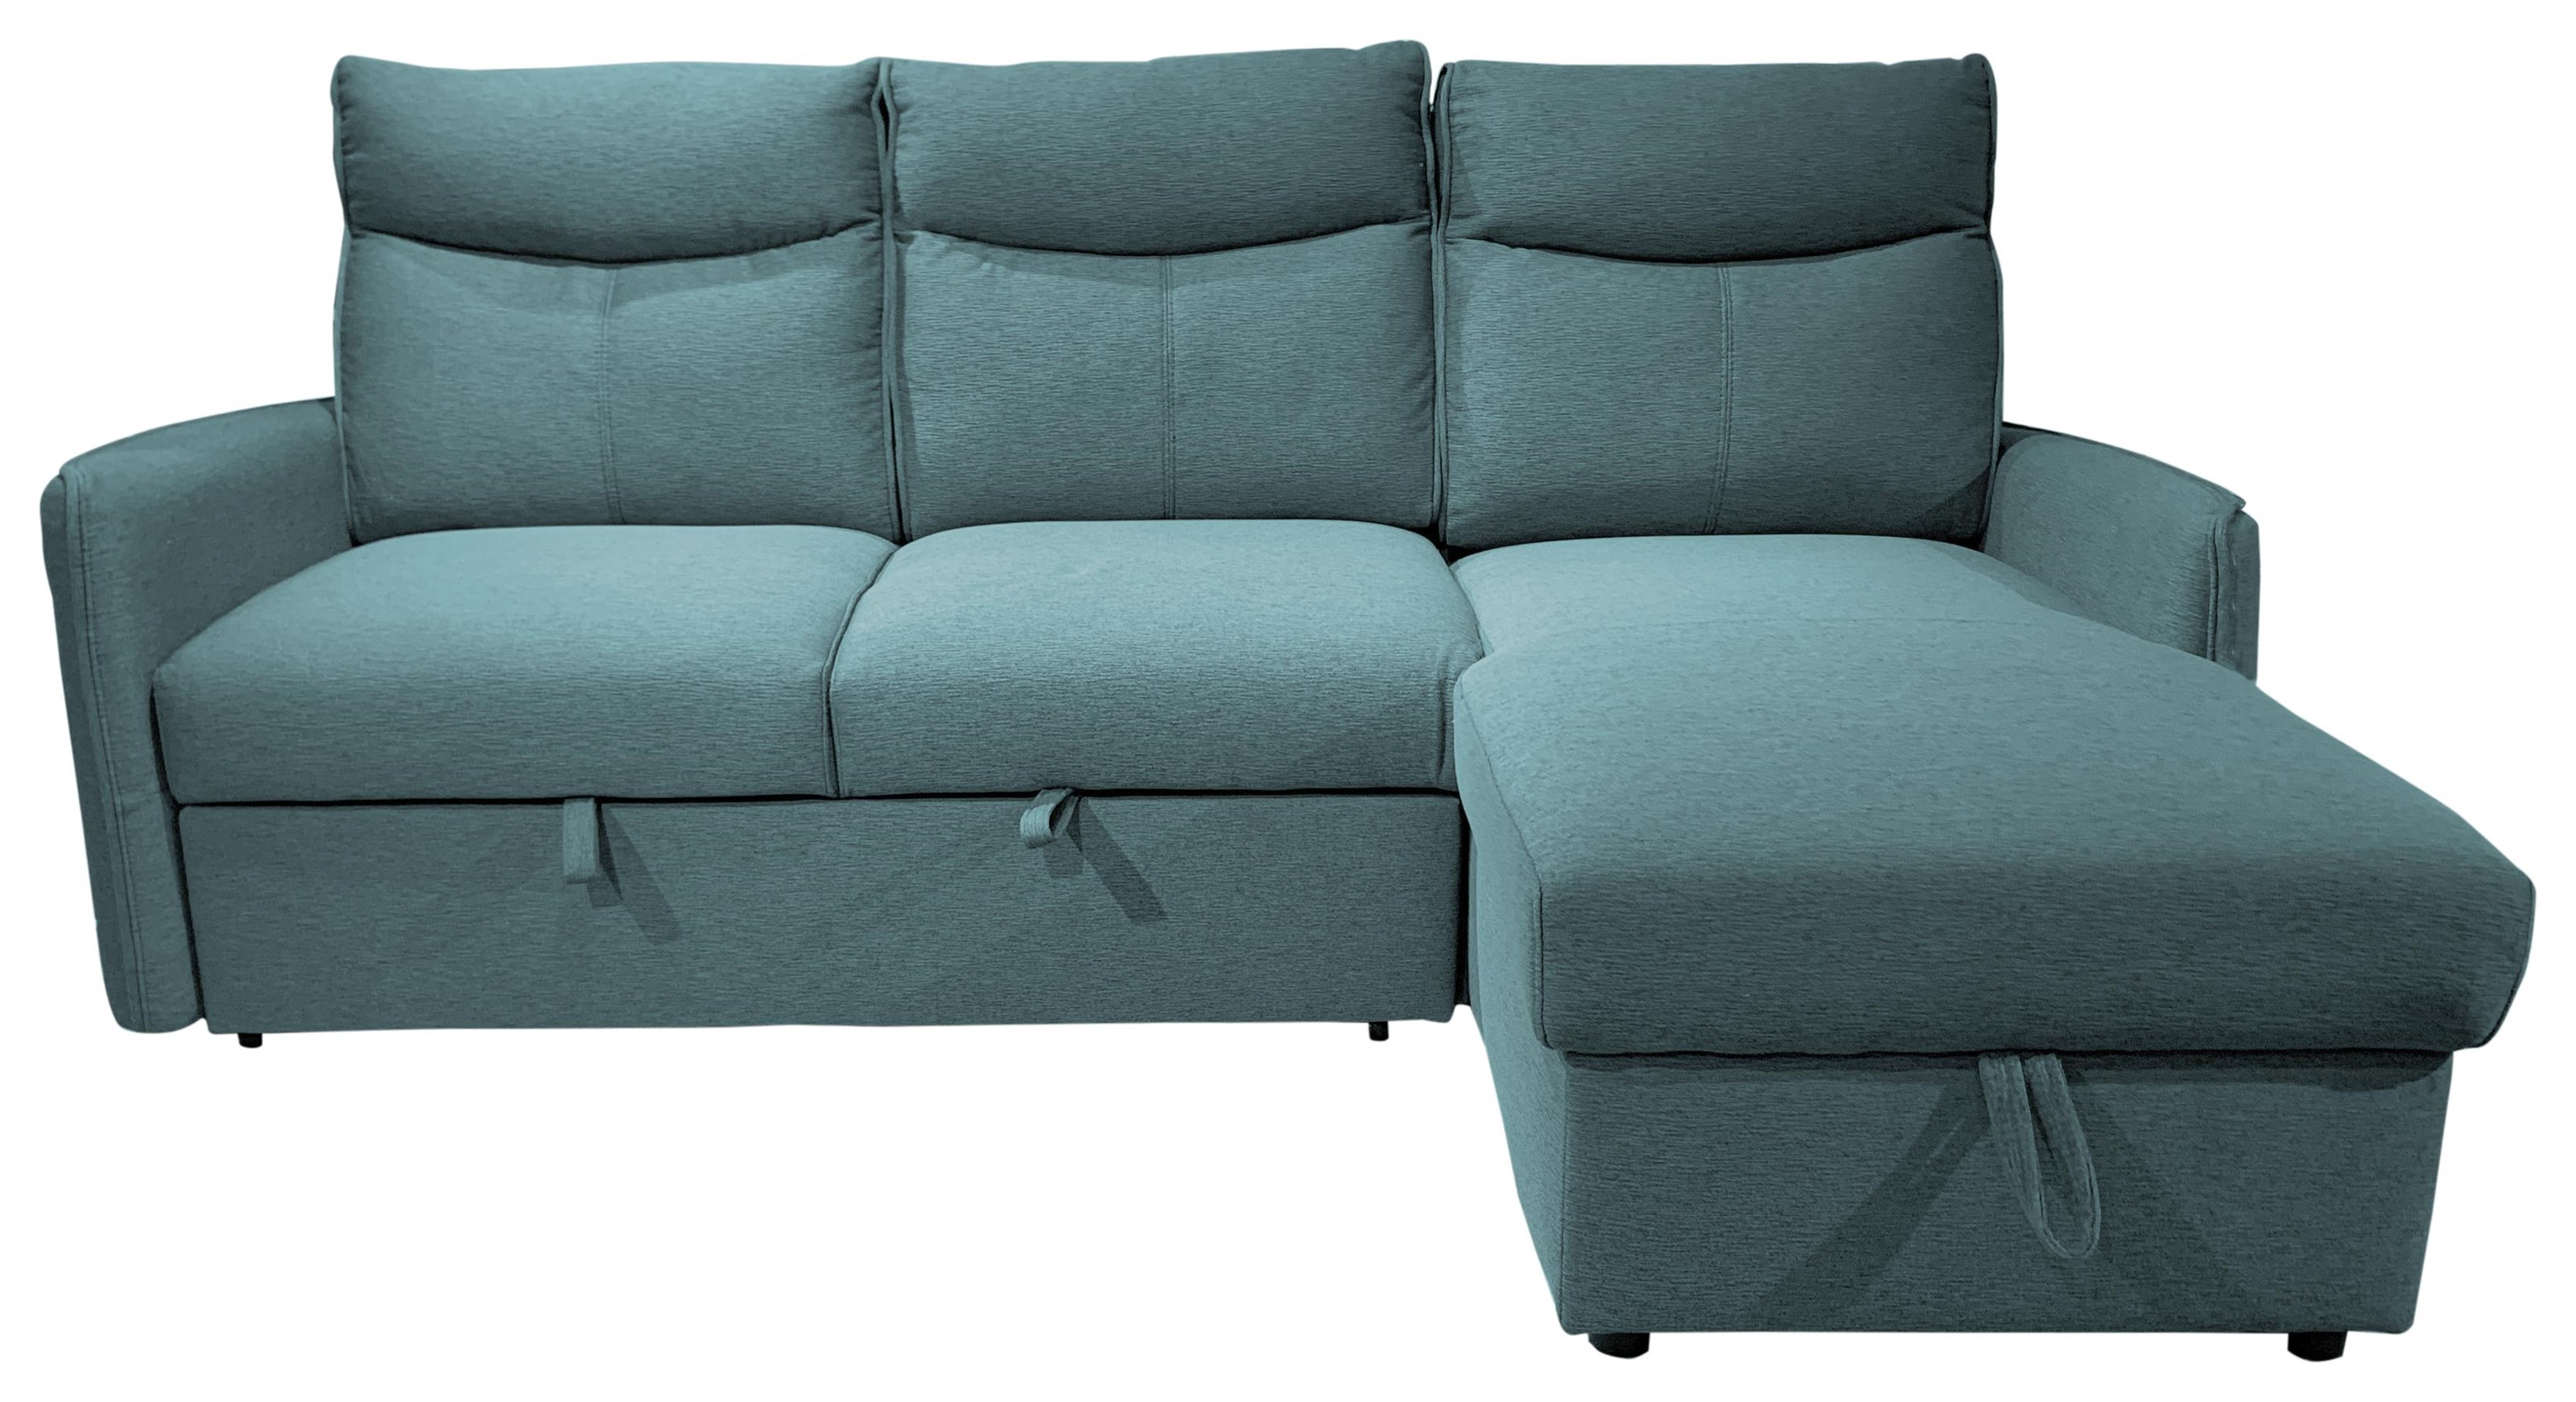 Tony Sectional sofabed by Amalfi Home Furniture at HomeWorld Furniture